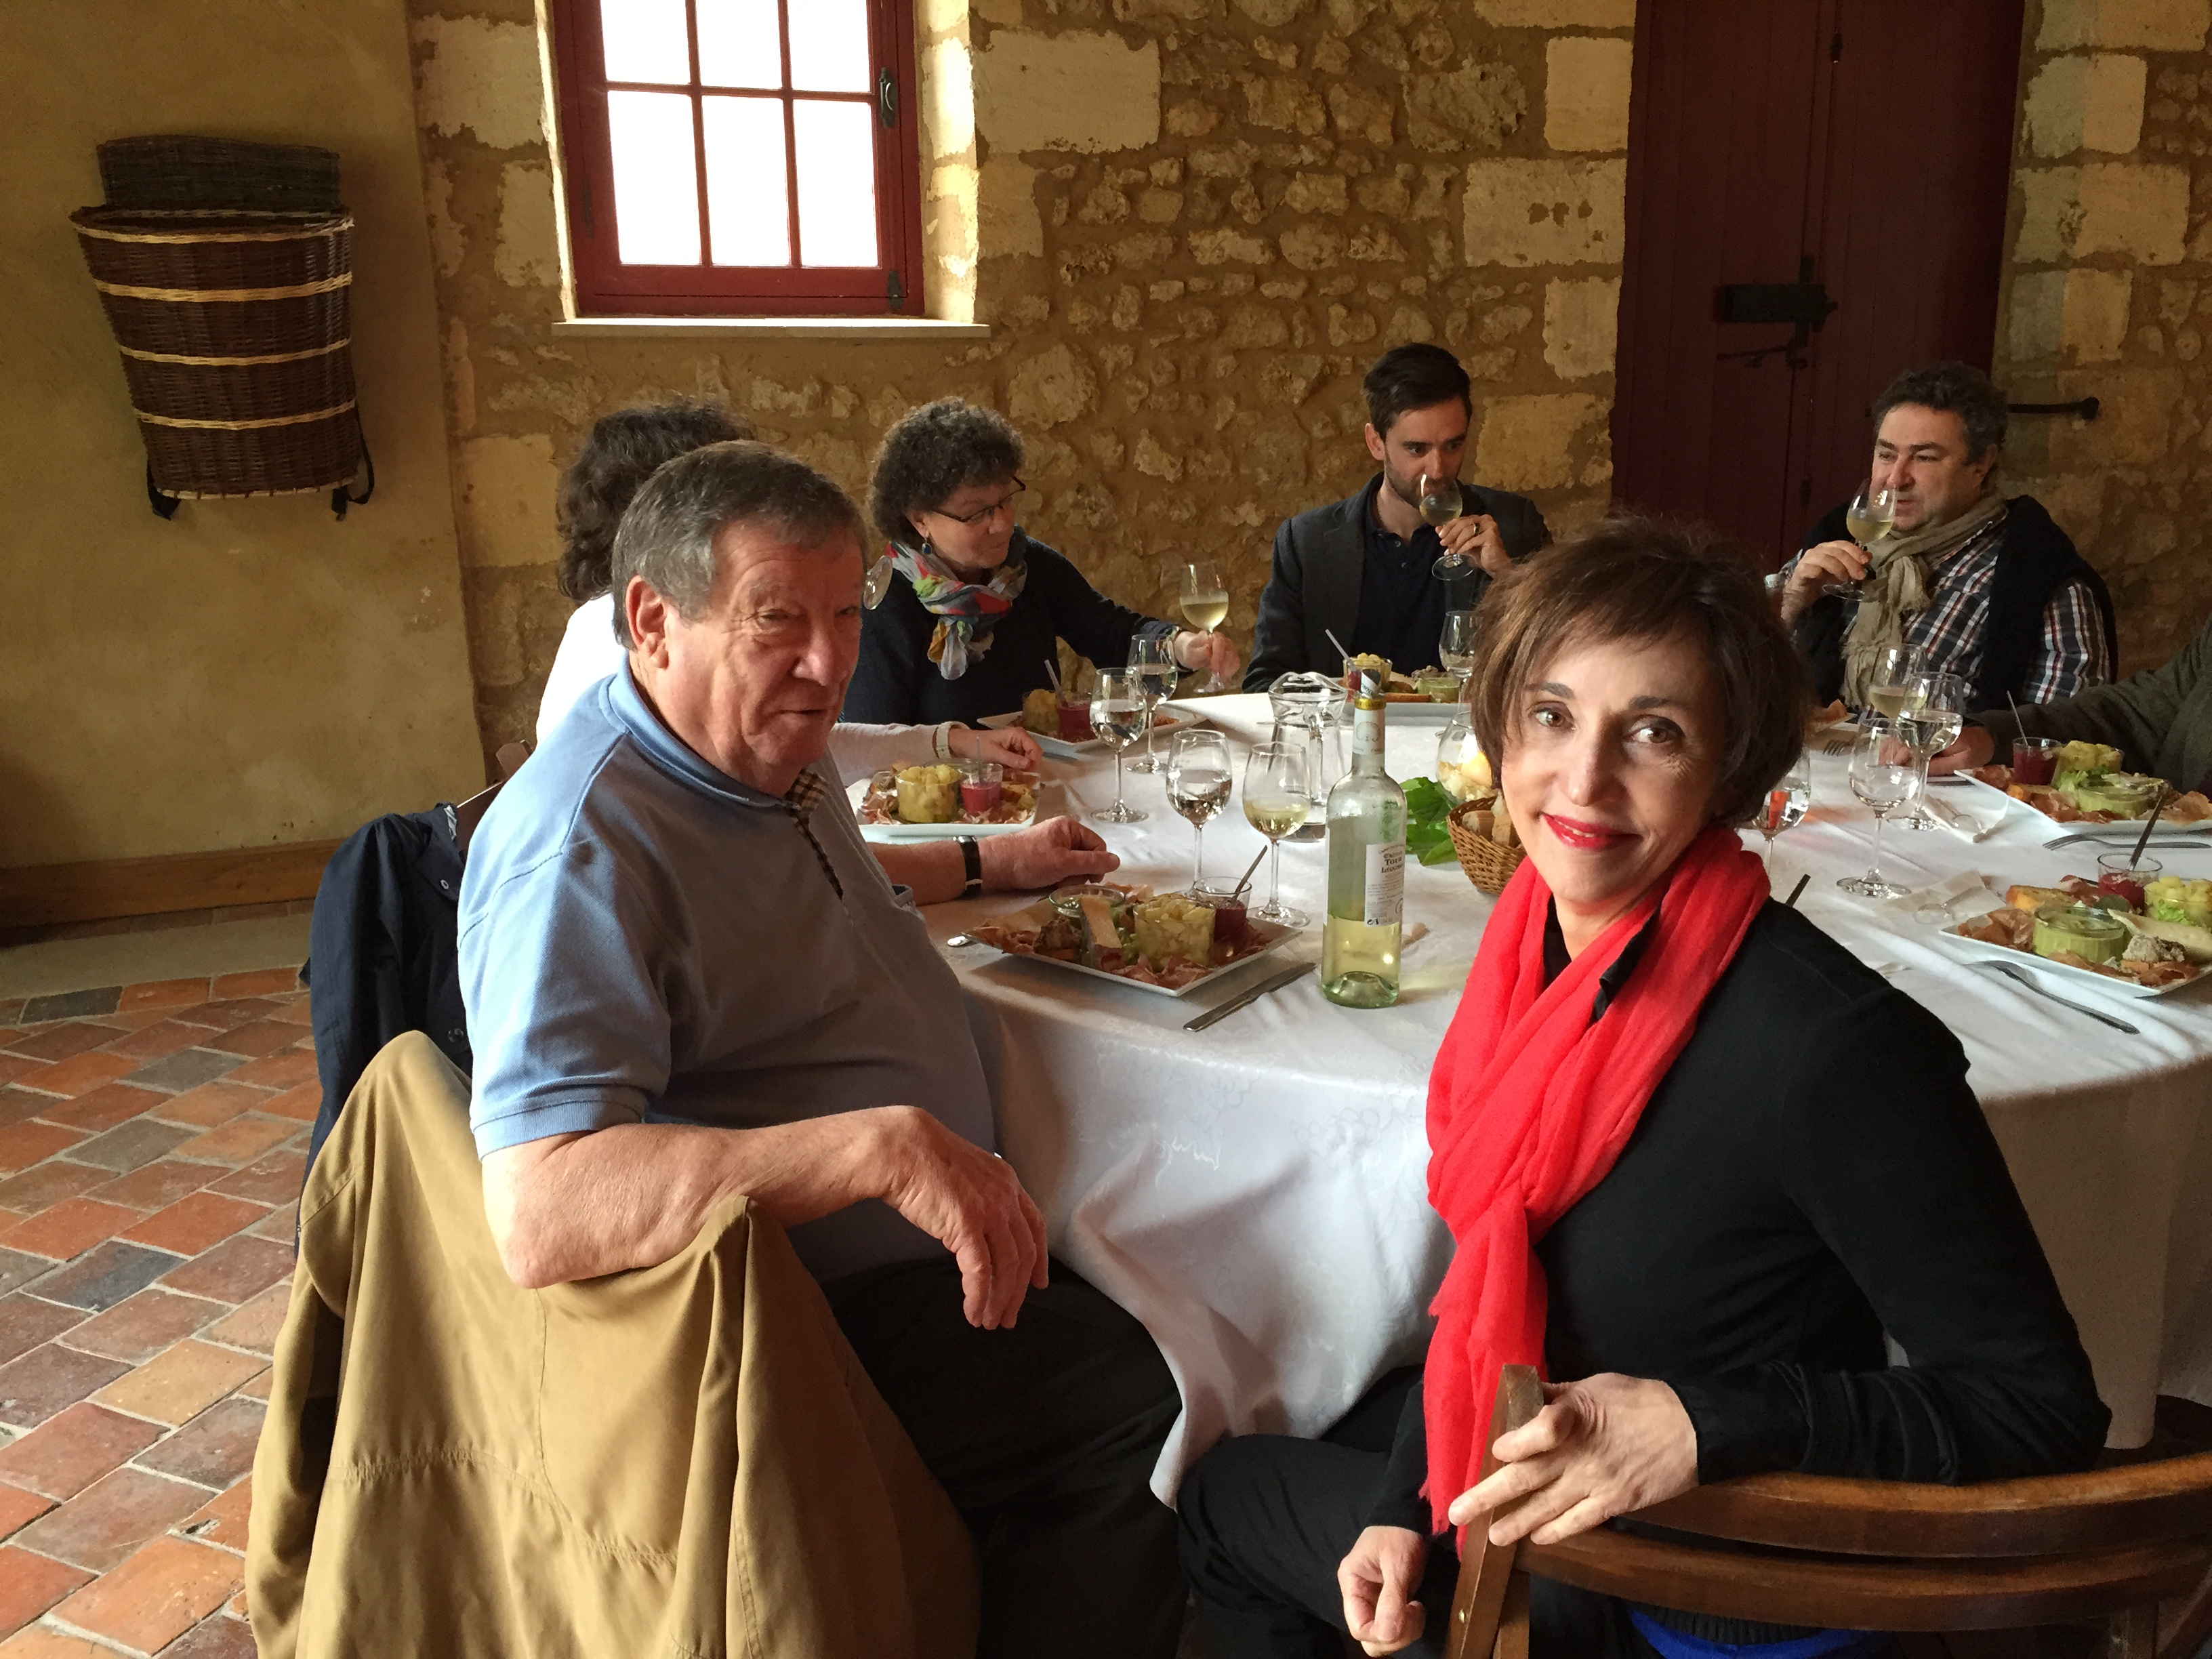 Lunch at Chateau Bailly, where I met helicopter pilot Gilbert Aubrée.